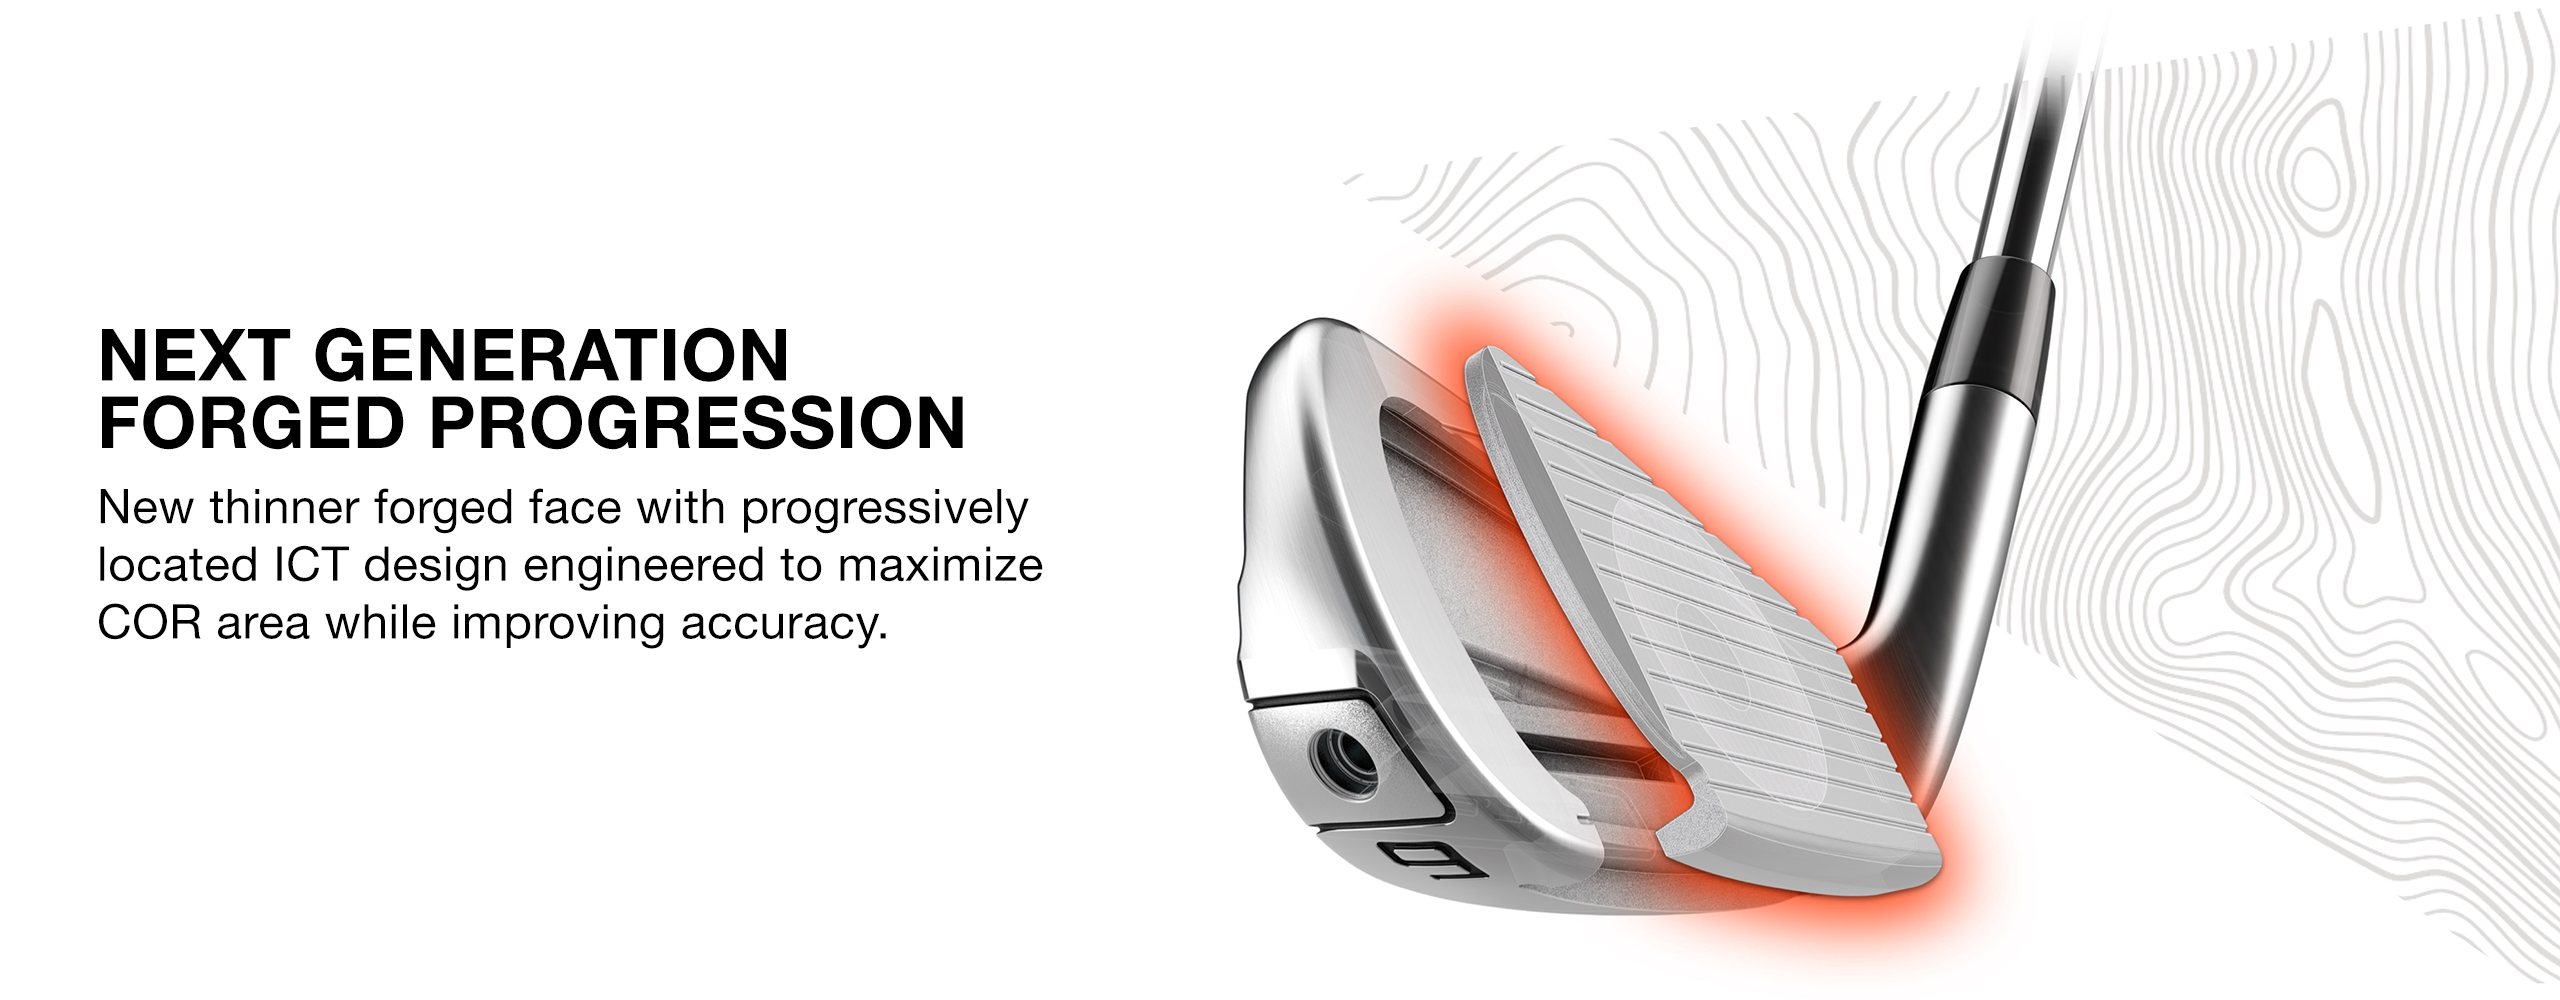 TaylorMade P790 Forged Progression Graphic